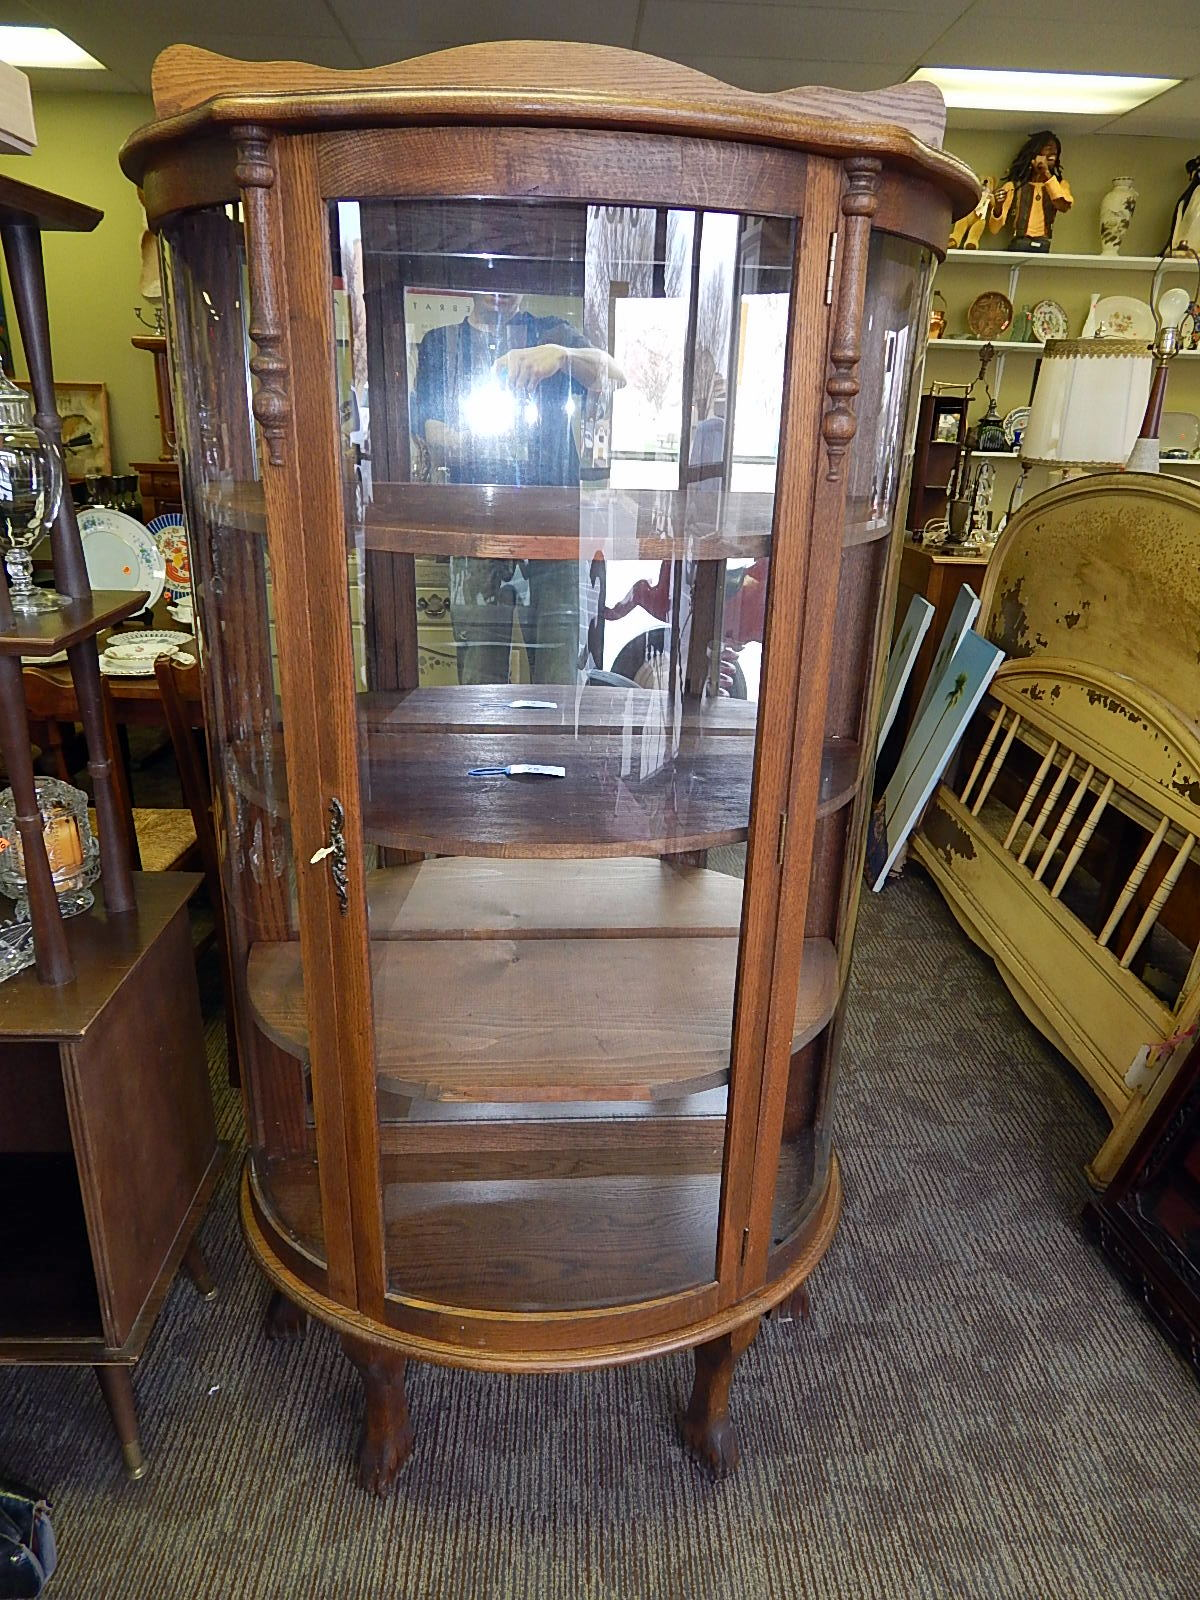 Antique Curved Claw Foot Oak Curio Display Cabinet - Antique Curved Claw Foot Oak Curio Display Cabinet Curiosity